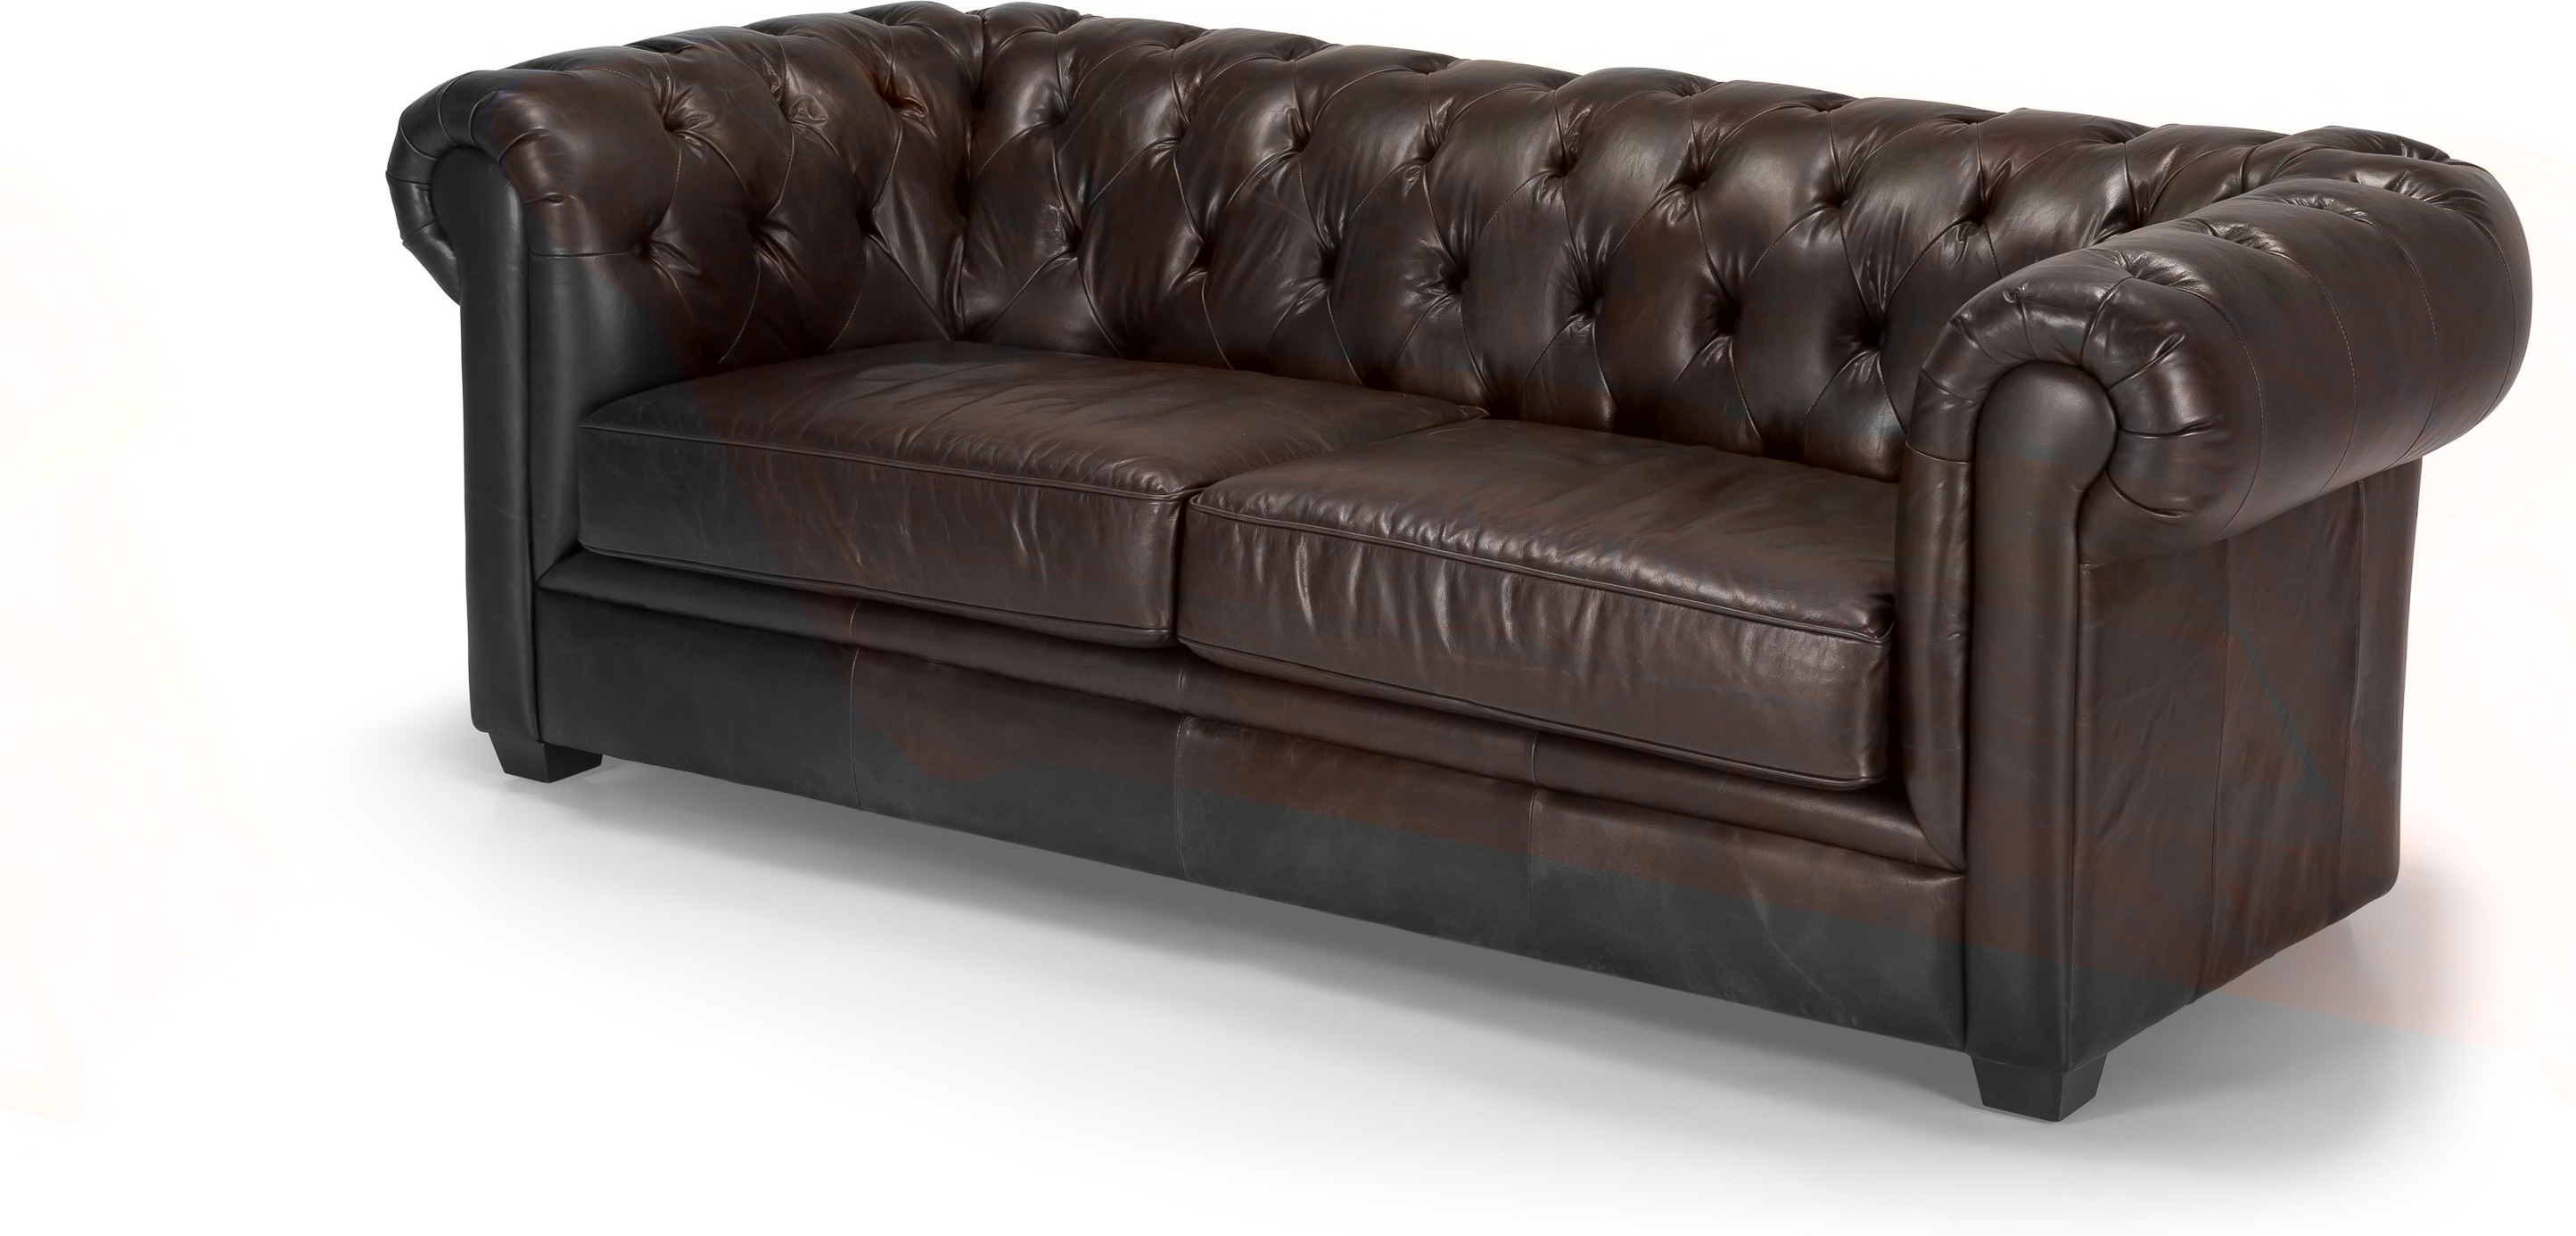 Buy A Chesterfield Sofa Buy Cheap Leather Chesterfield Sofa Compare Sofas Prices